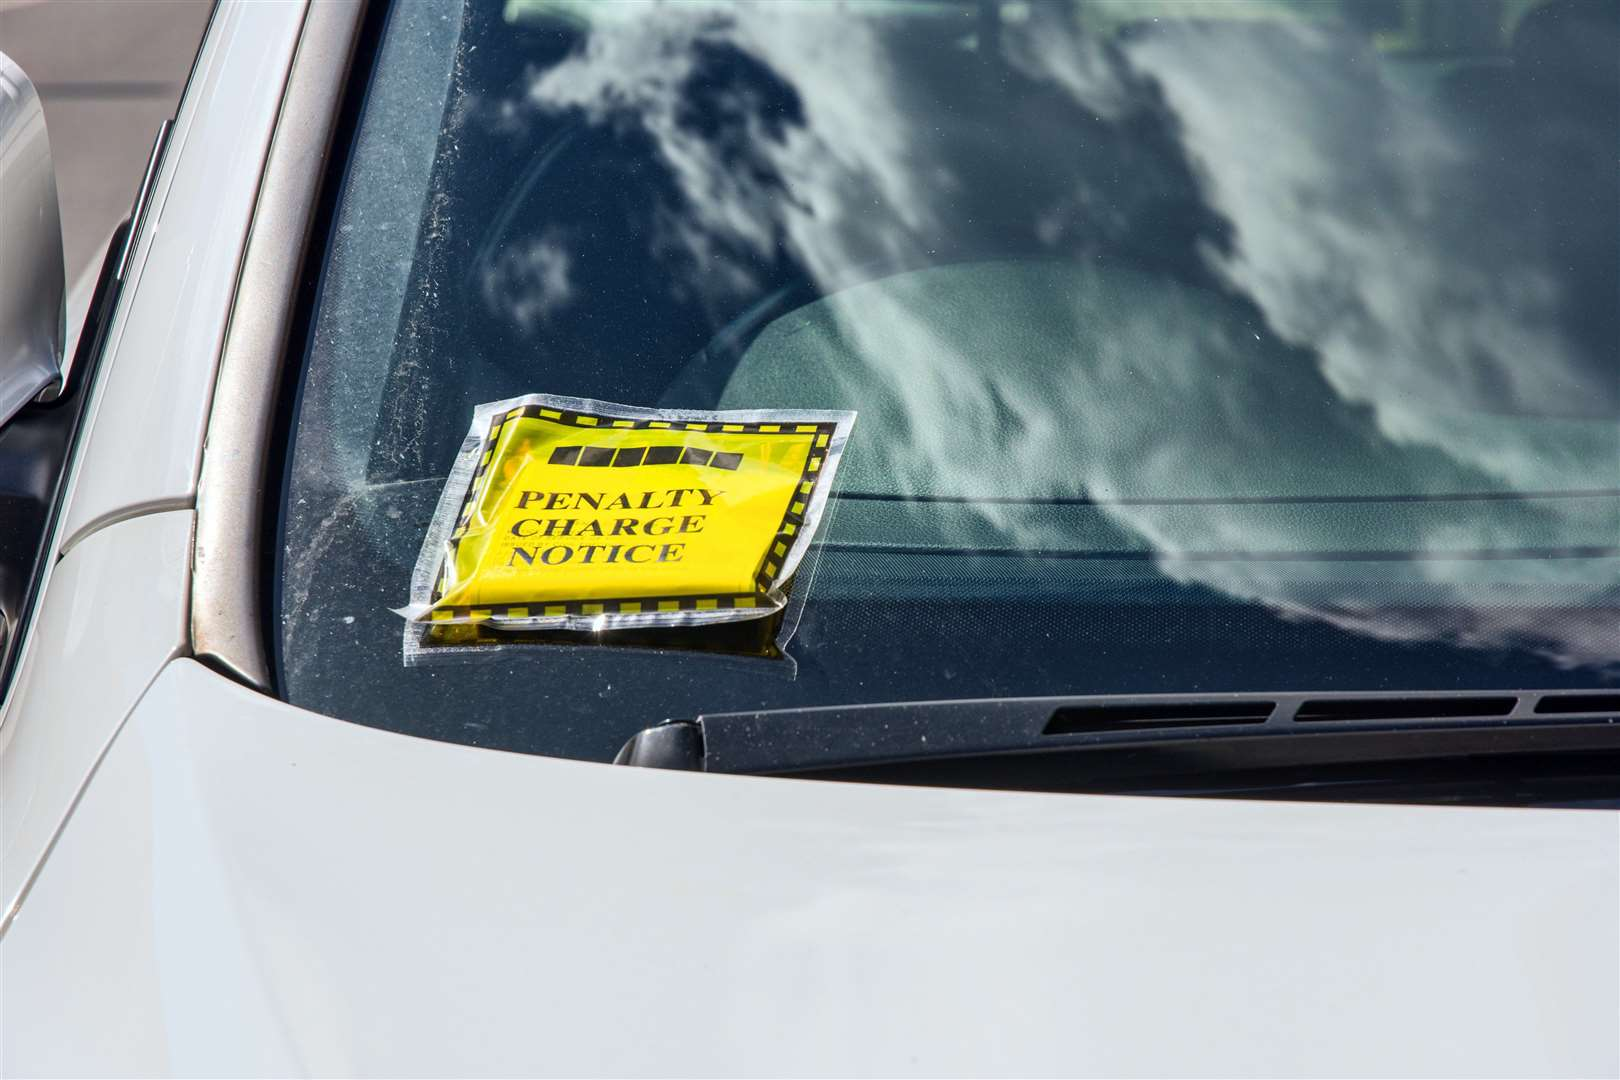 A Parking Ticket also called a Penalty Charge Notice glued to a car windscreen. The yellow ticket is the official notice issued by the Local Authority Traffic Warden for a vehicle which is contravening a parking restriction or regulation. (21196680)